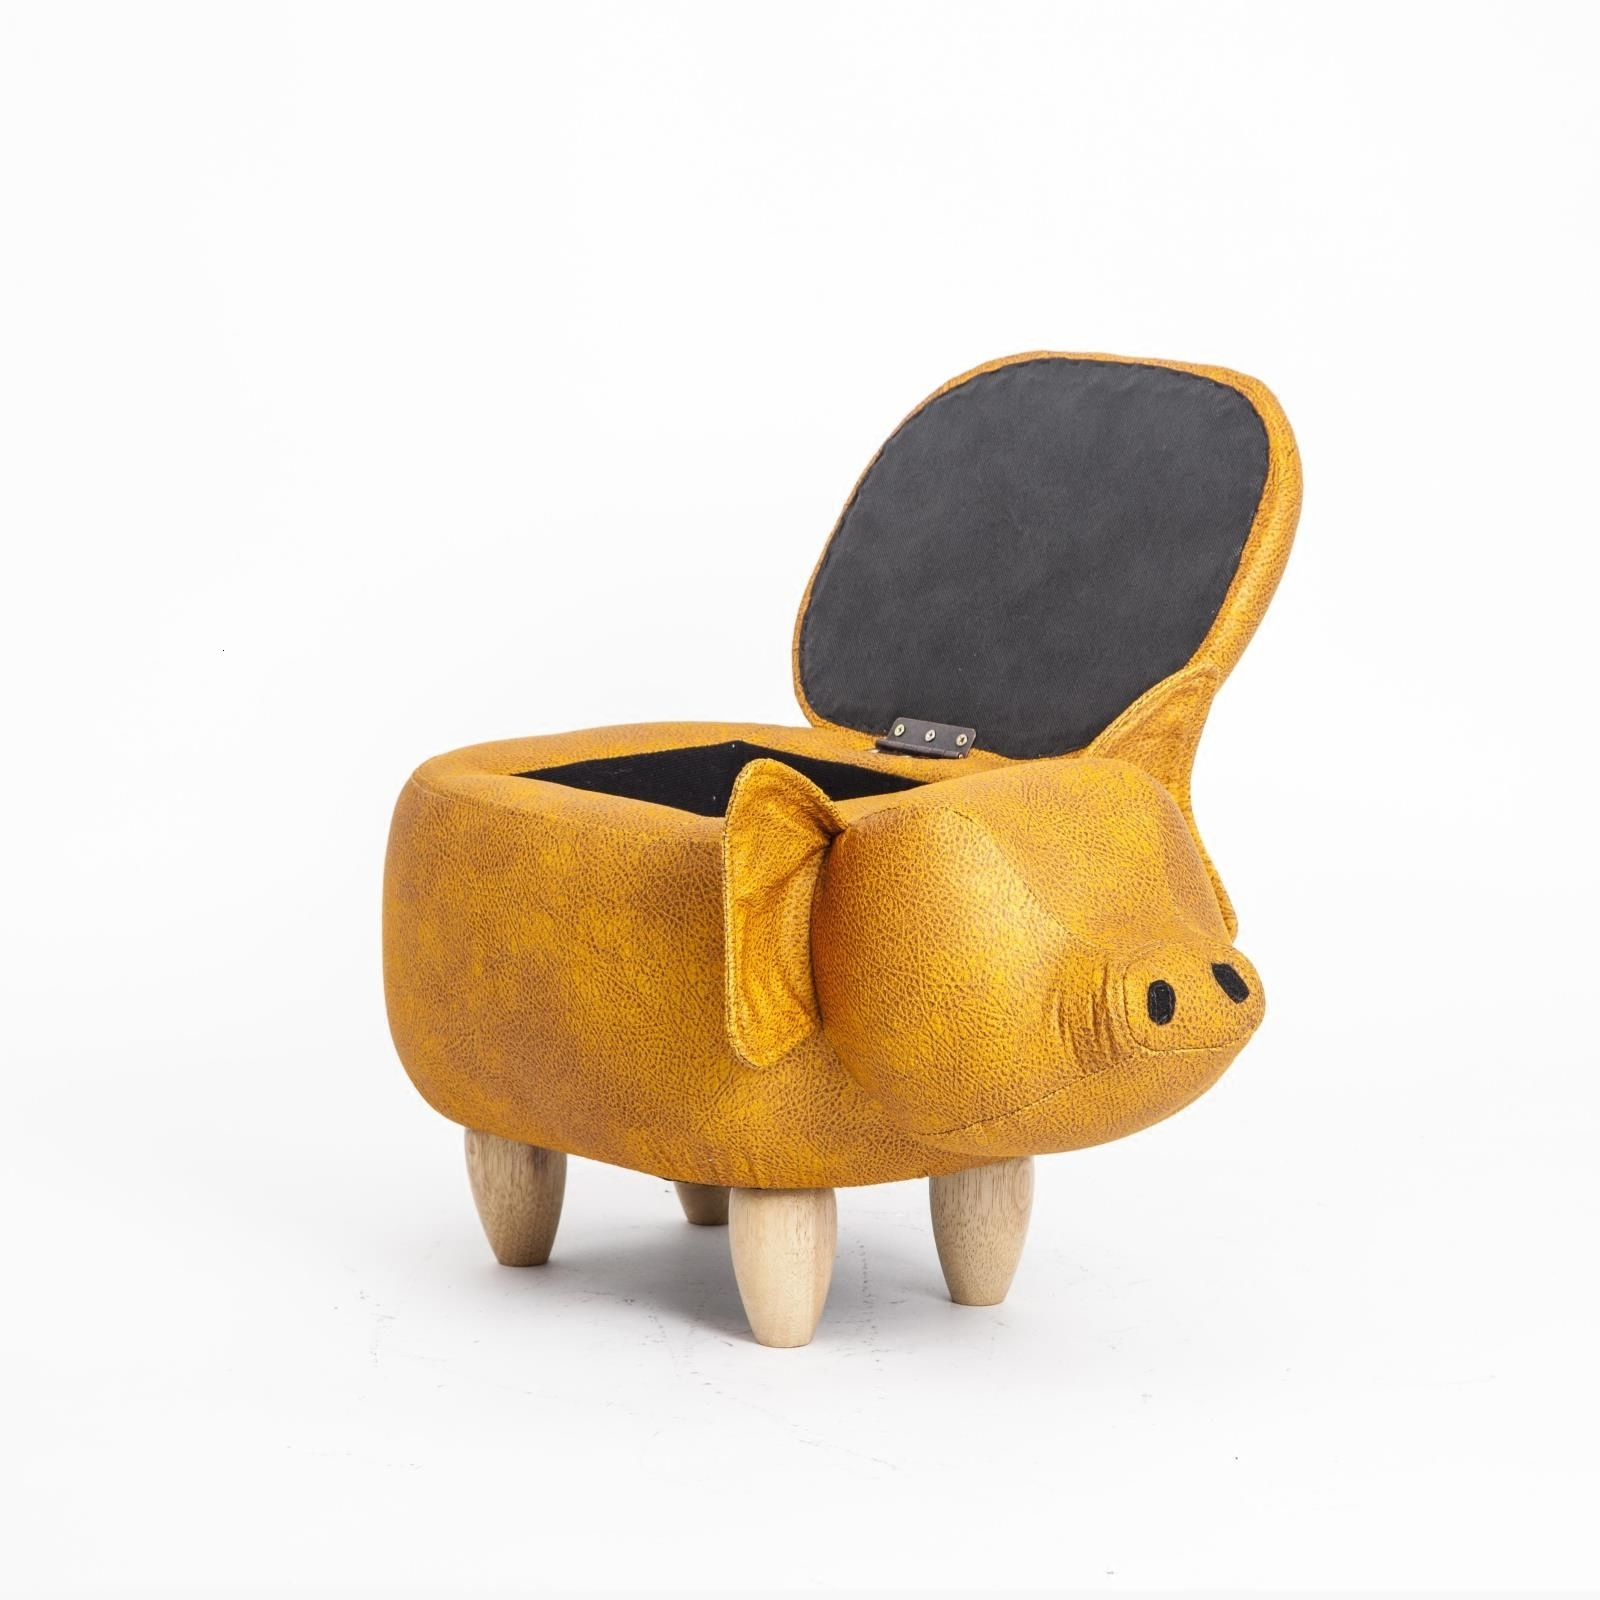 Originality Changing Shoes Stool Piglet Changing Shoes Stool Wear Shoe Stool Designer Lovely Interest Store Low Stool Cartoon